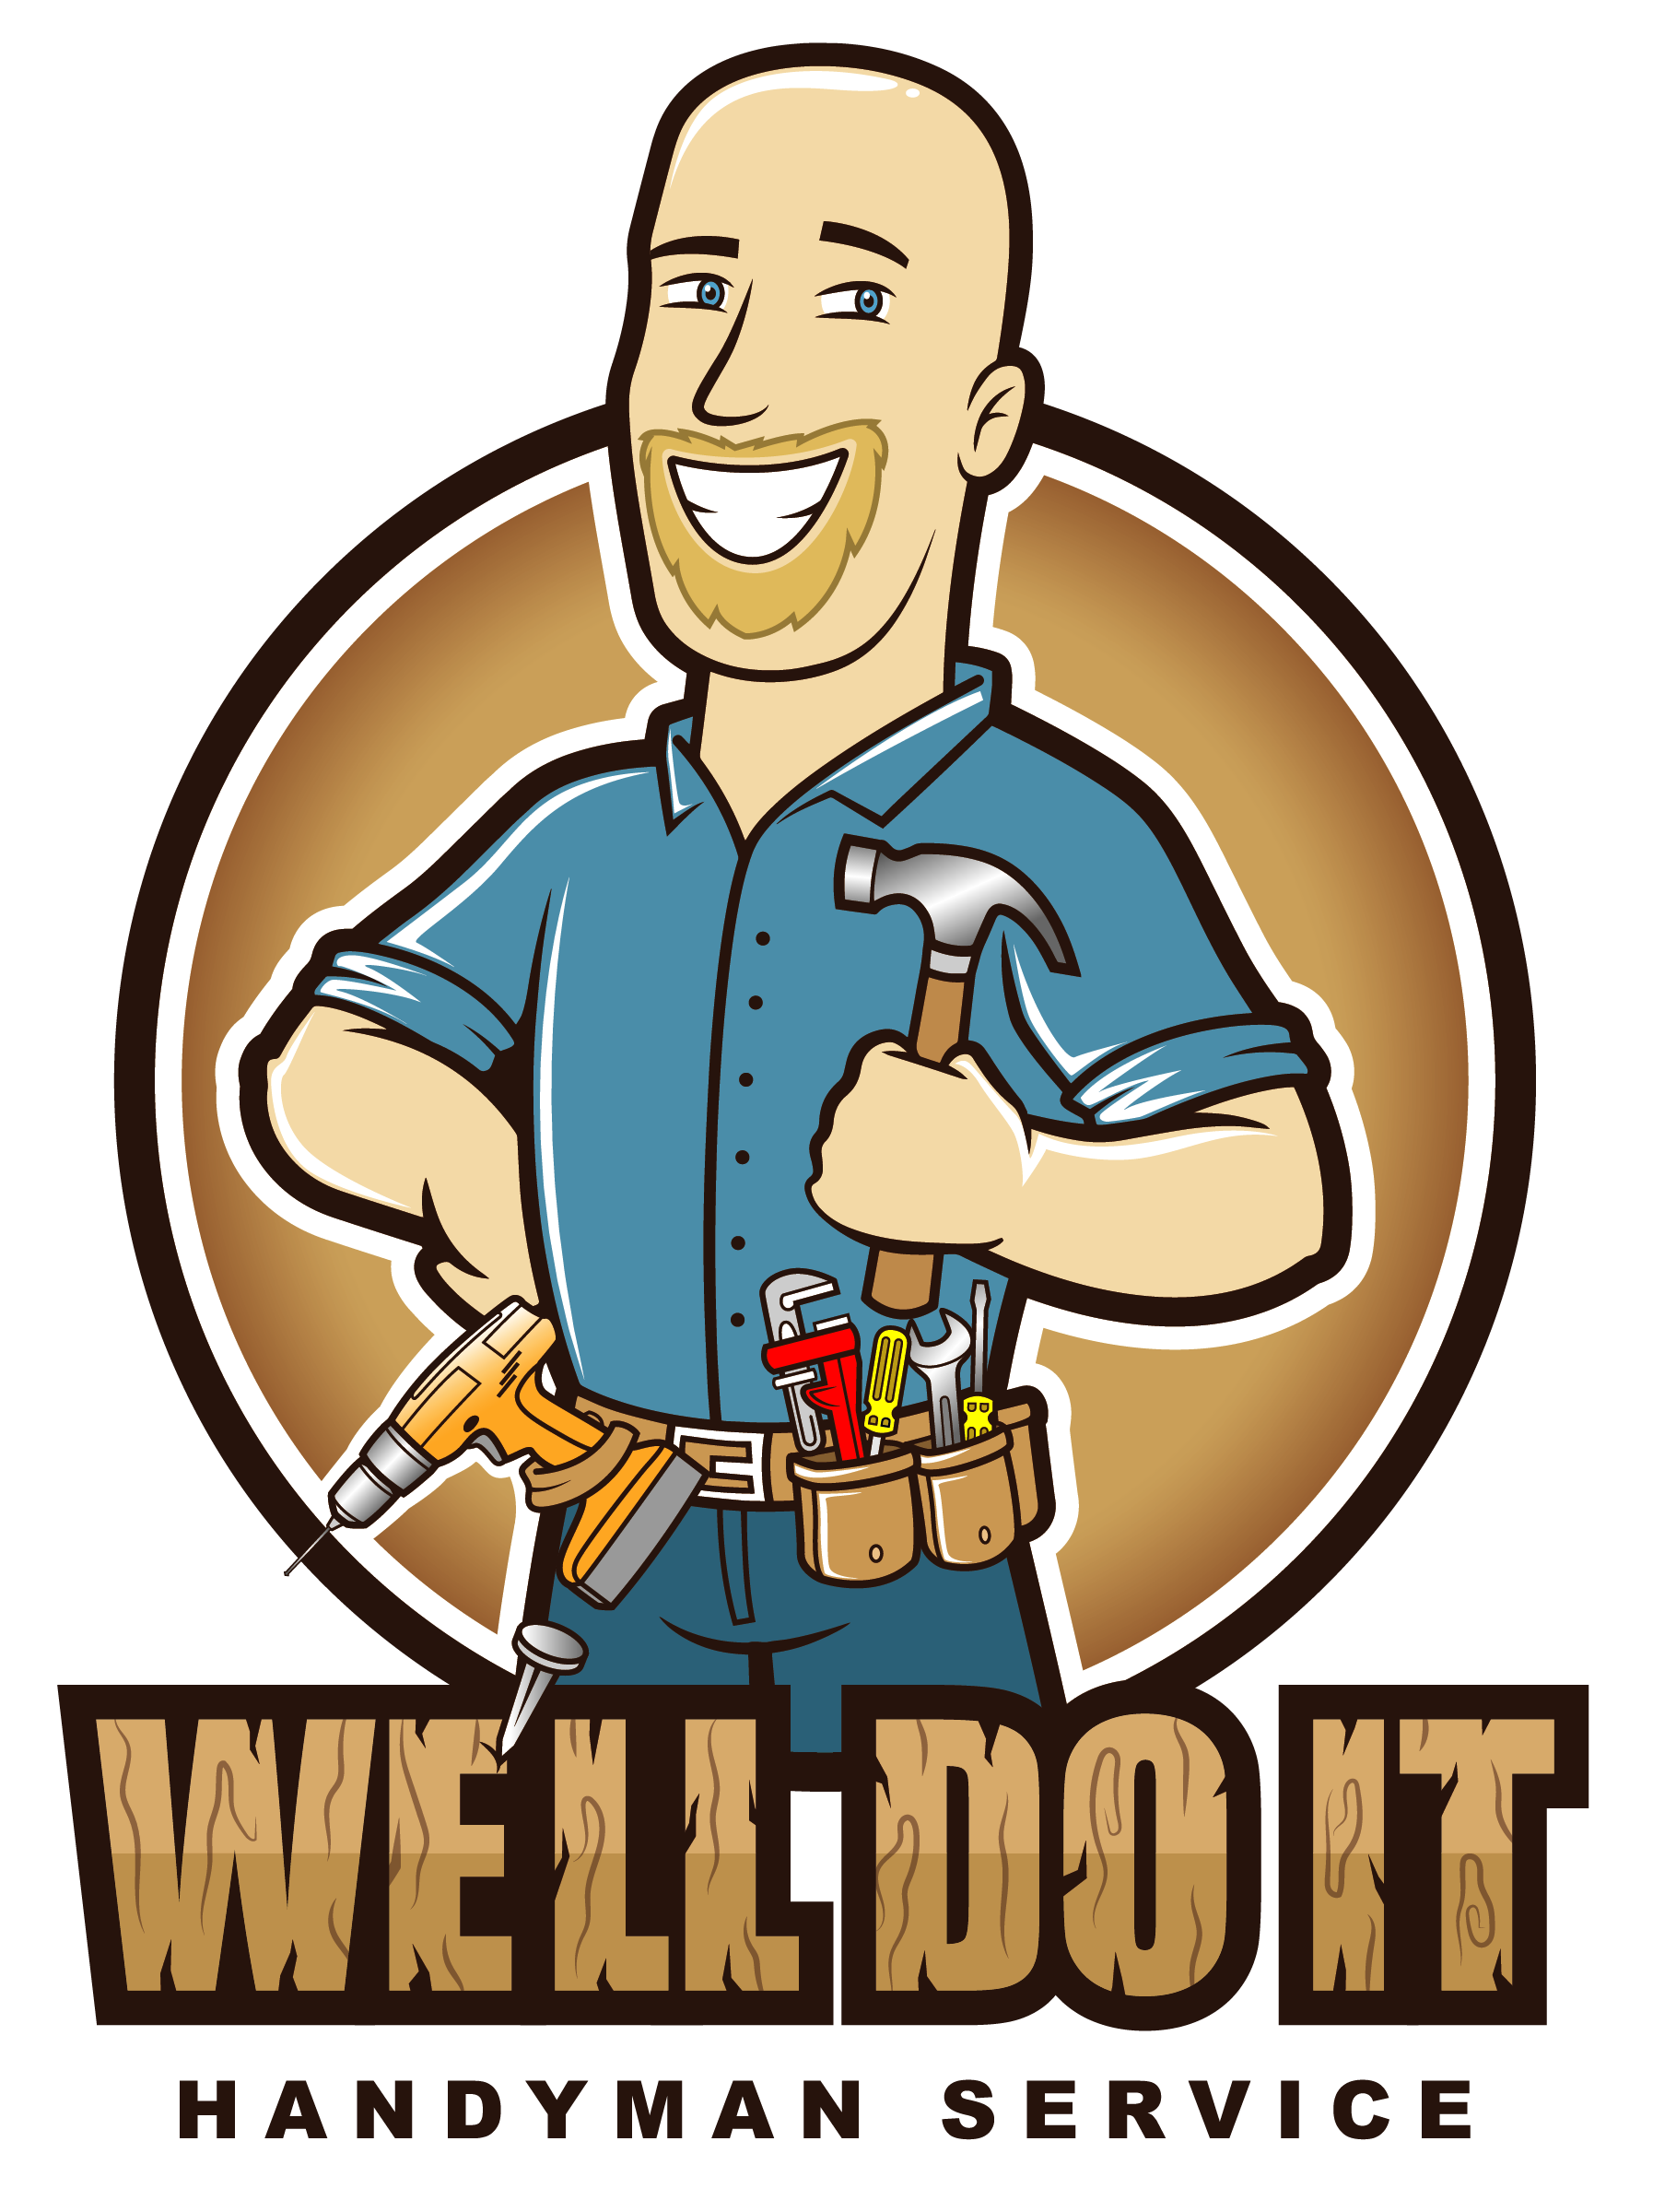 We'll Do It! Handyman Service